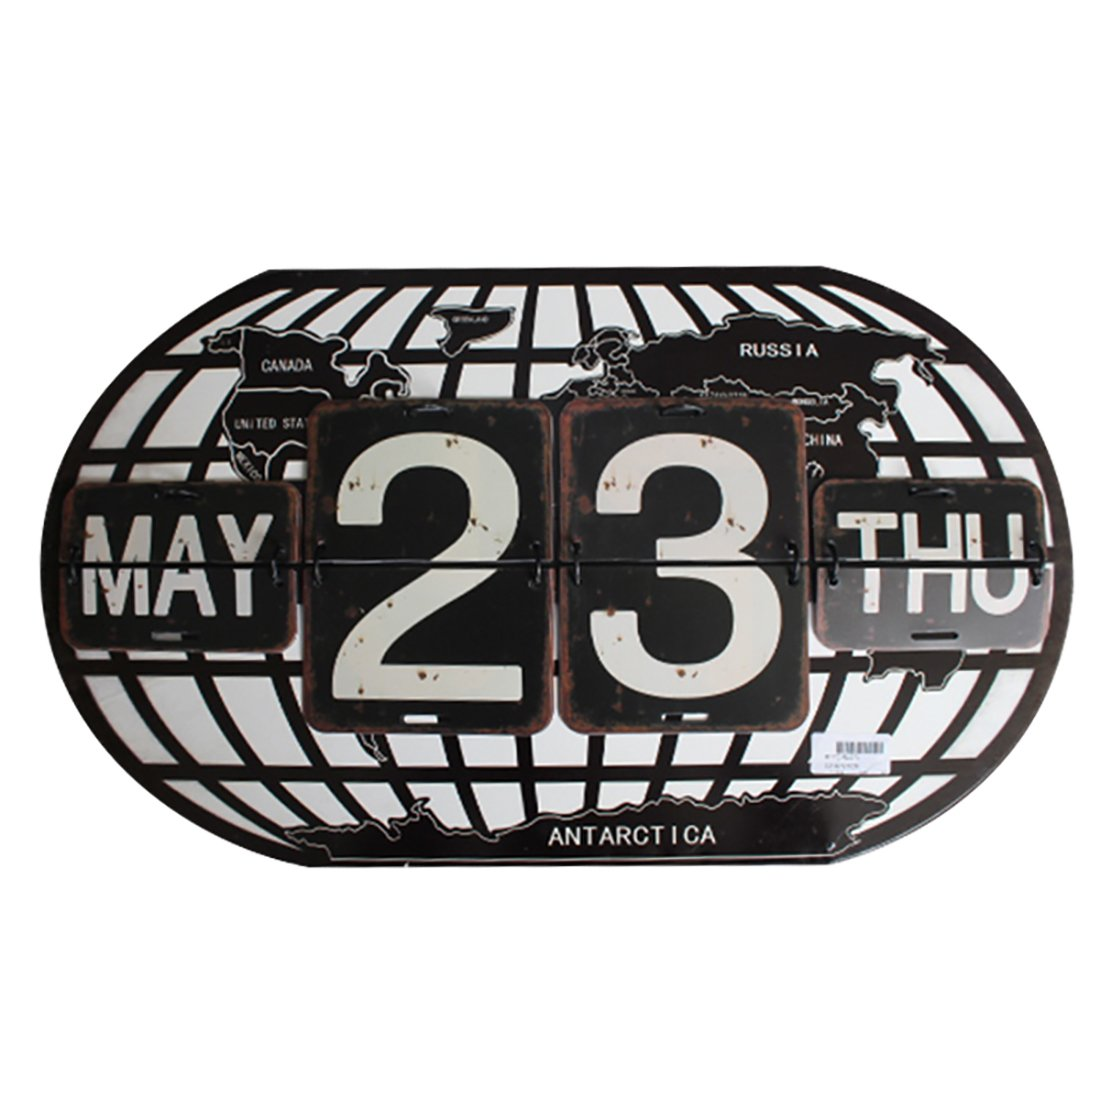 Archi 20.5'' Metal Calendar Shabby Black Perpetual Flip World Map Shape Distressed Finish Wall Hanging-Reproduction (Ellipse, Black)